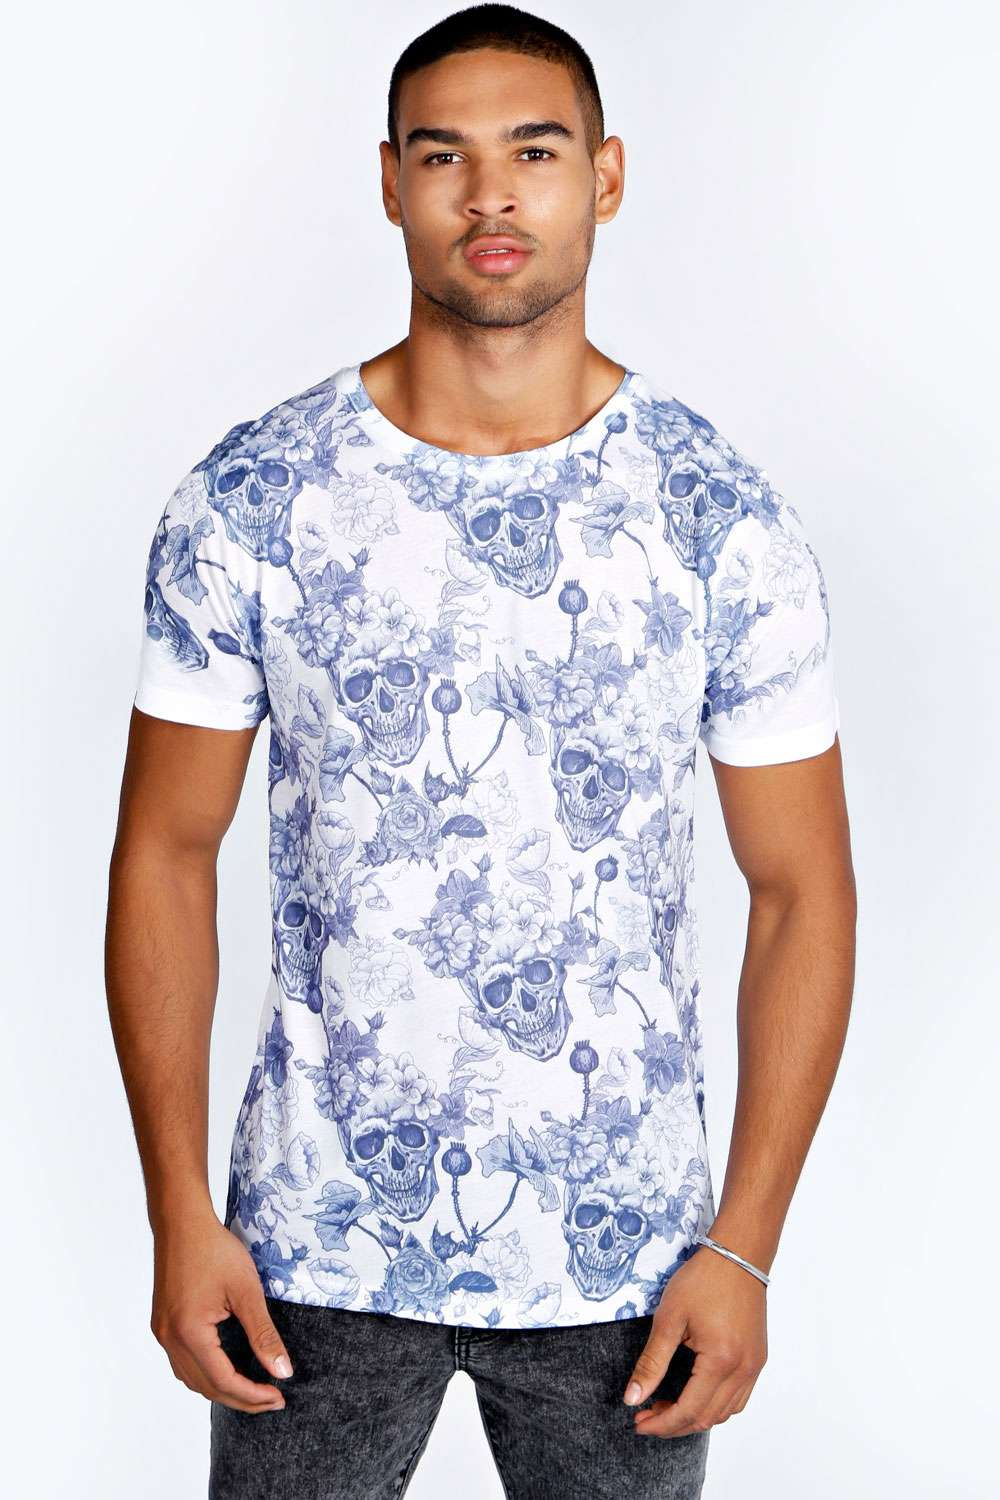 boohoo mens gothic skull and floral printed tee top t